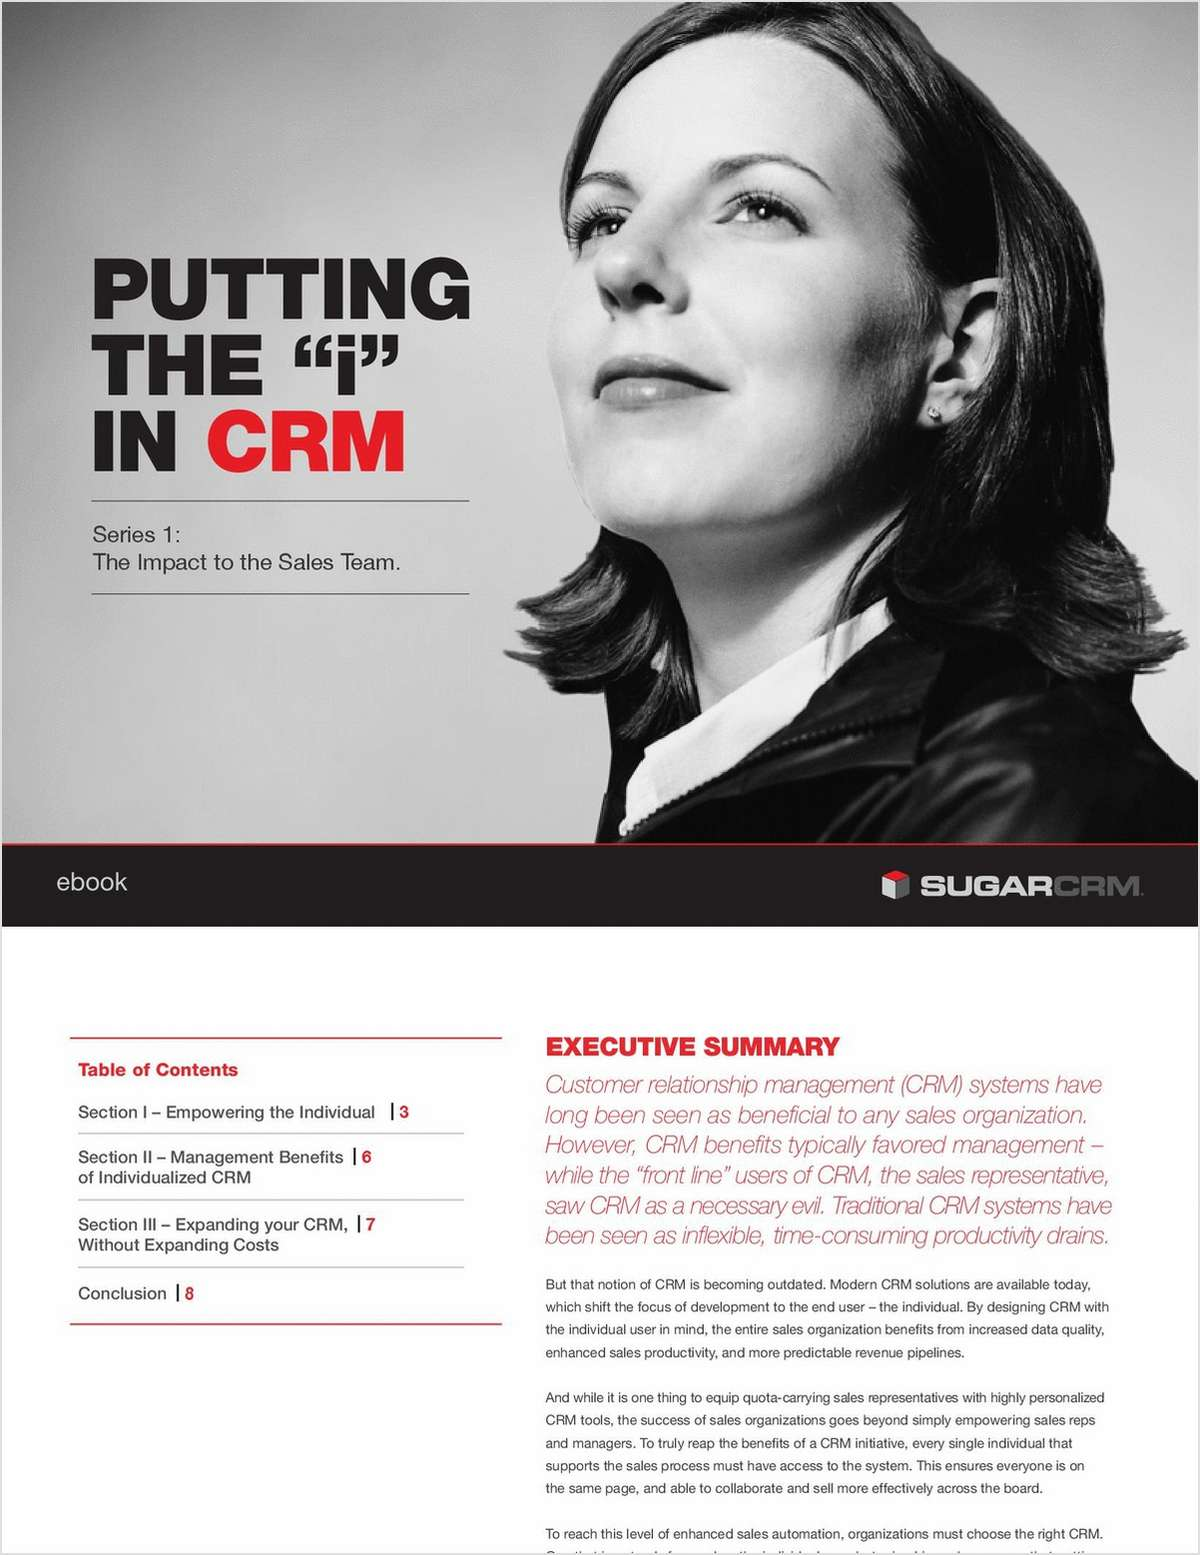 No Longer a Necessary Evil: How Modern CRM Empowers Sales